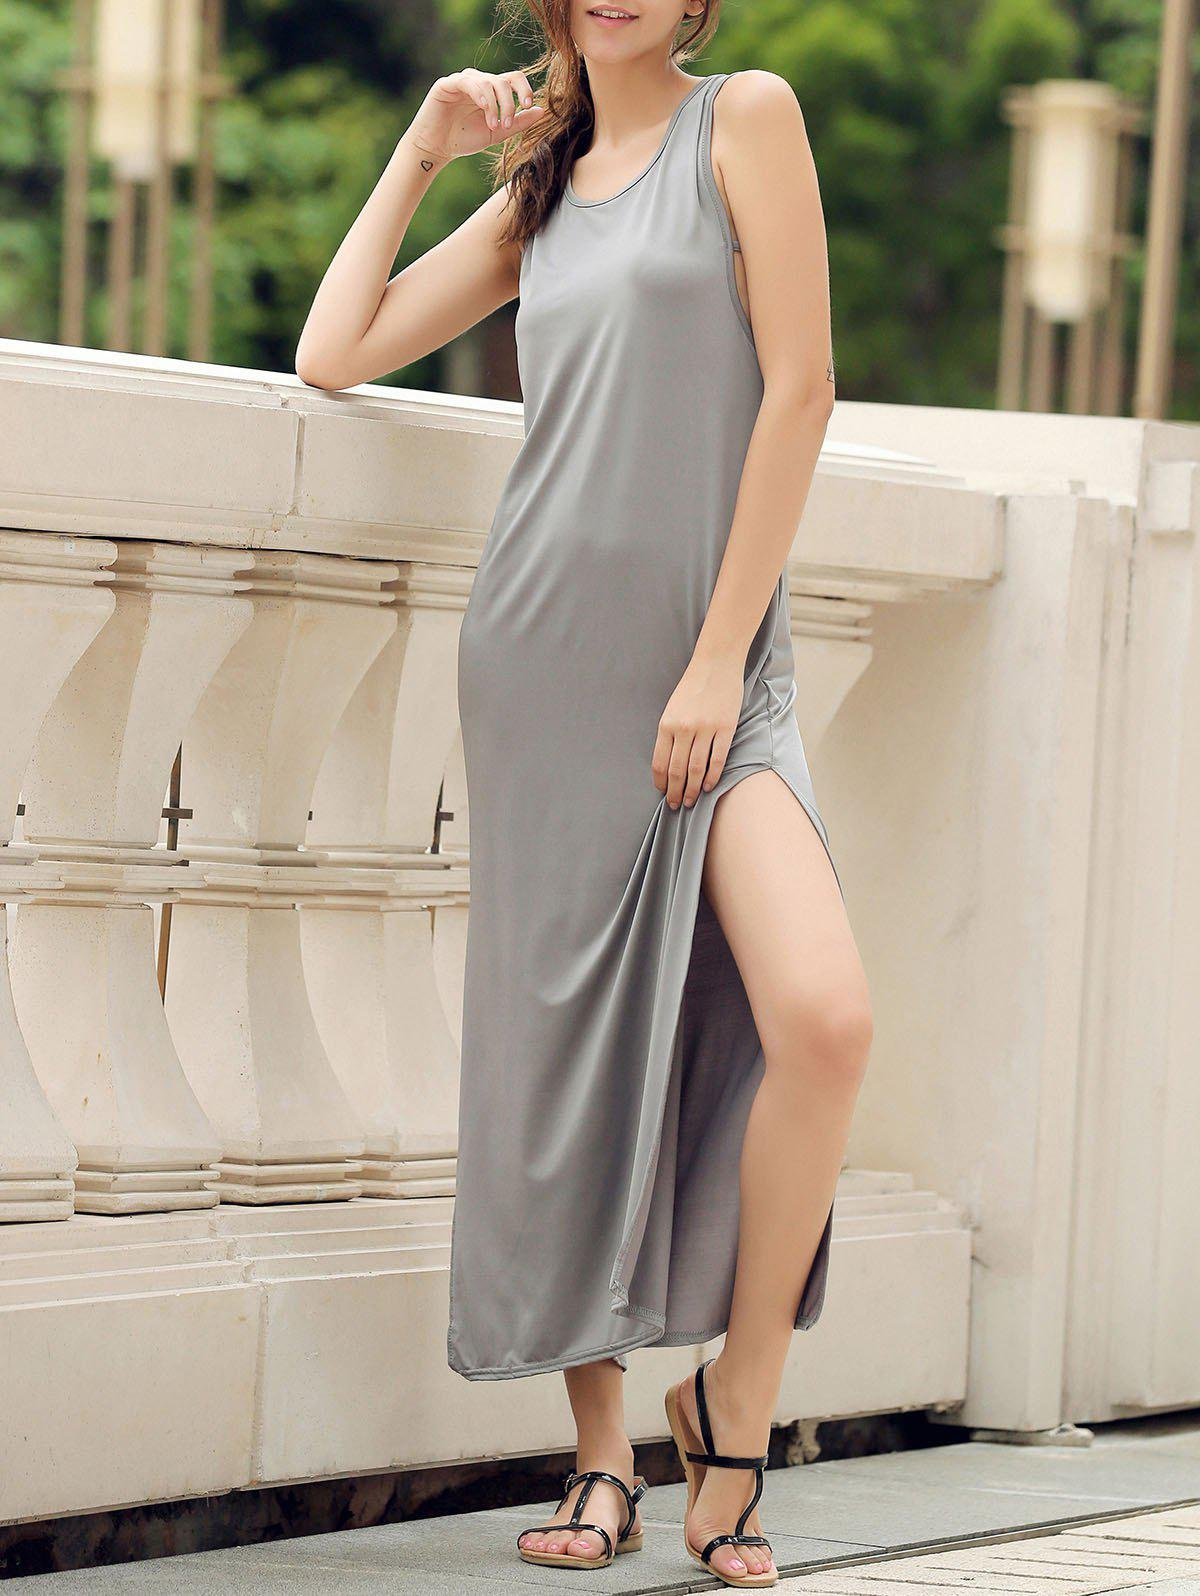 Stylish Scoop Neck Sleeveless High Slit Solid Color Women's Dress - GRAY S